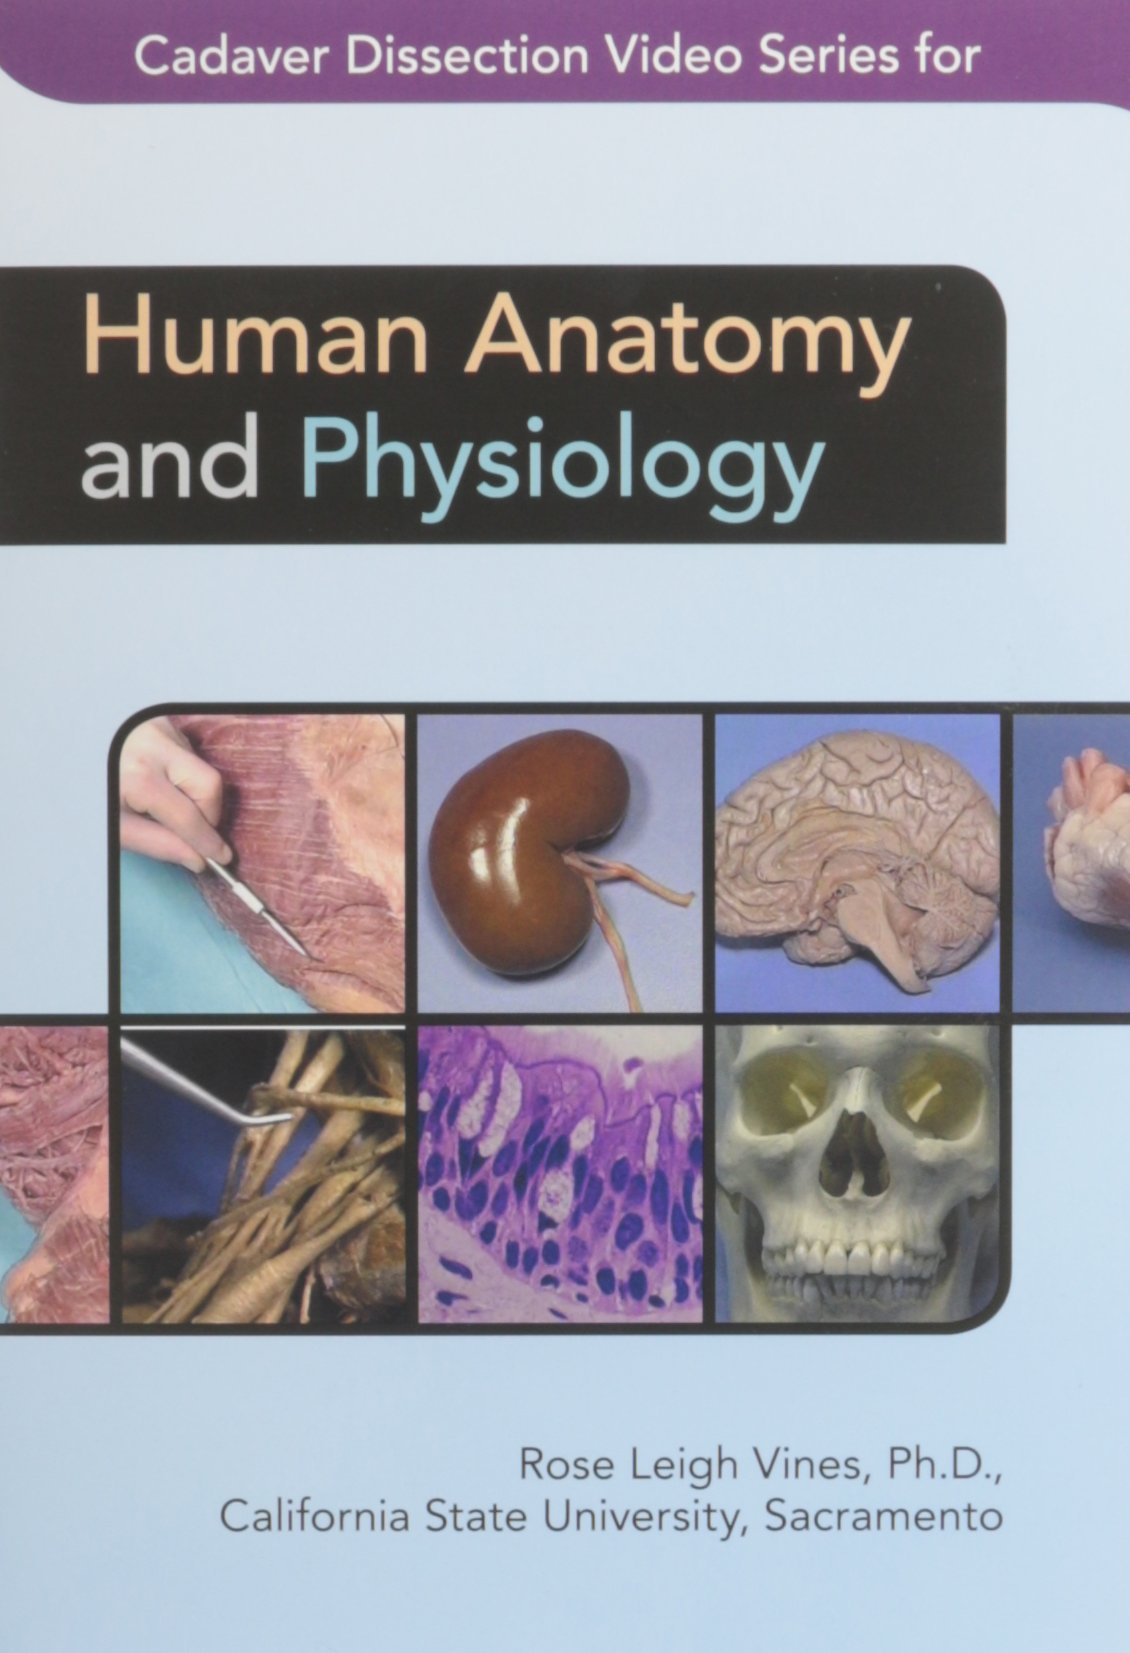 Buy Cadaver Dissection Video Series for Human Anatomy and Physiology ...